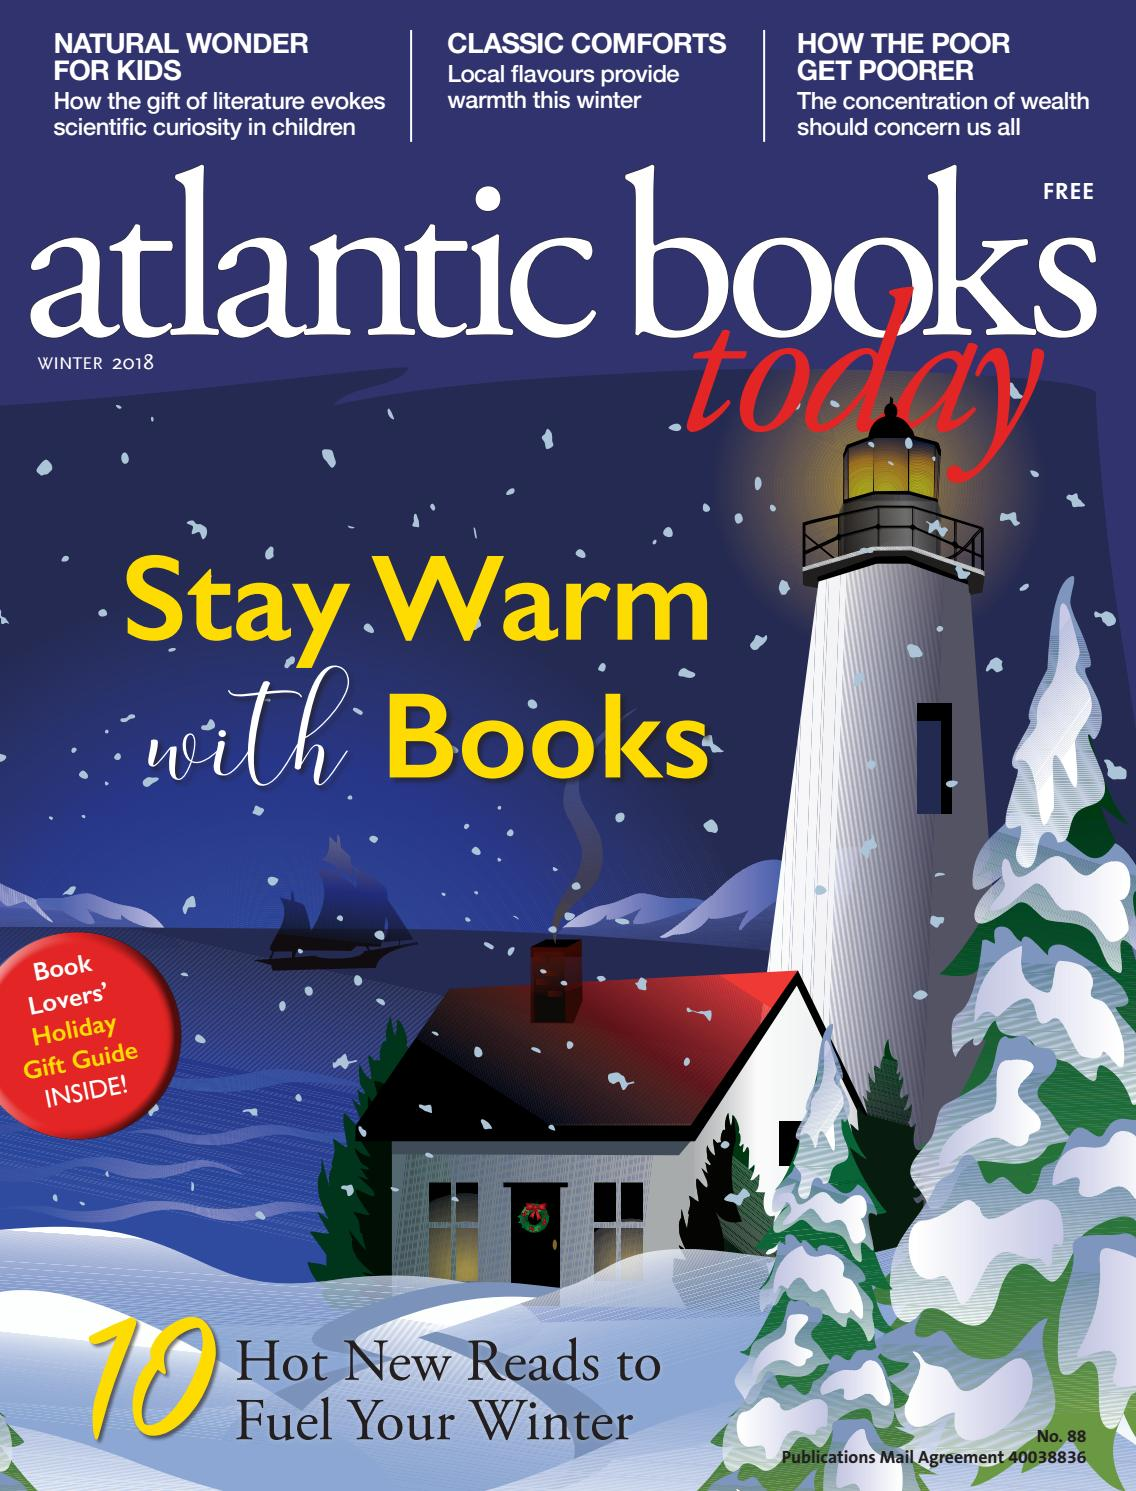 Atlantic Books Today Issue 88 - Winter 2018 by Atlantic Books Today - issuu